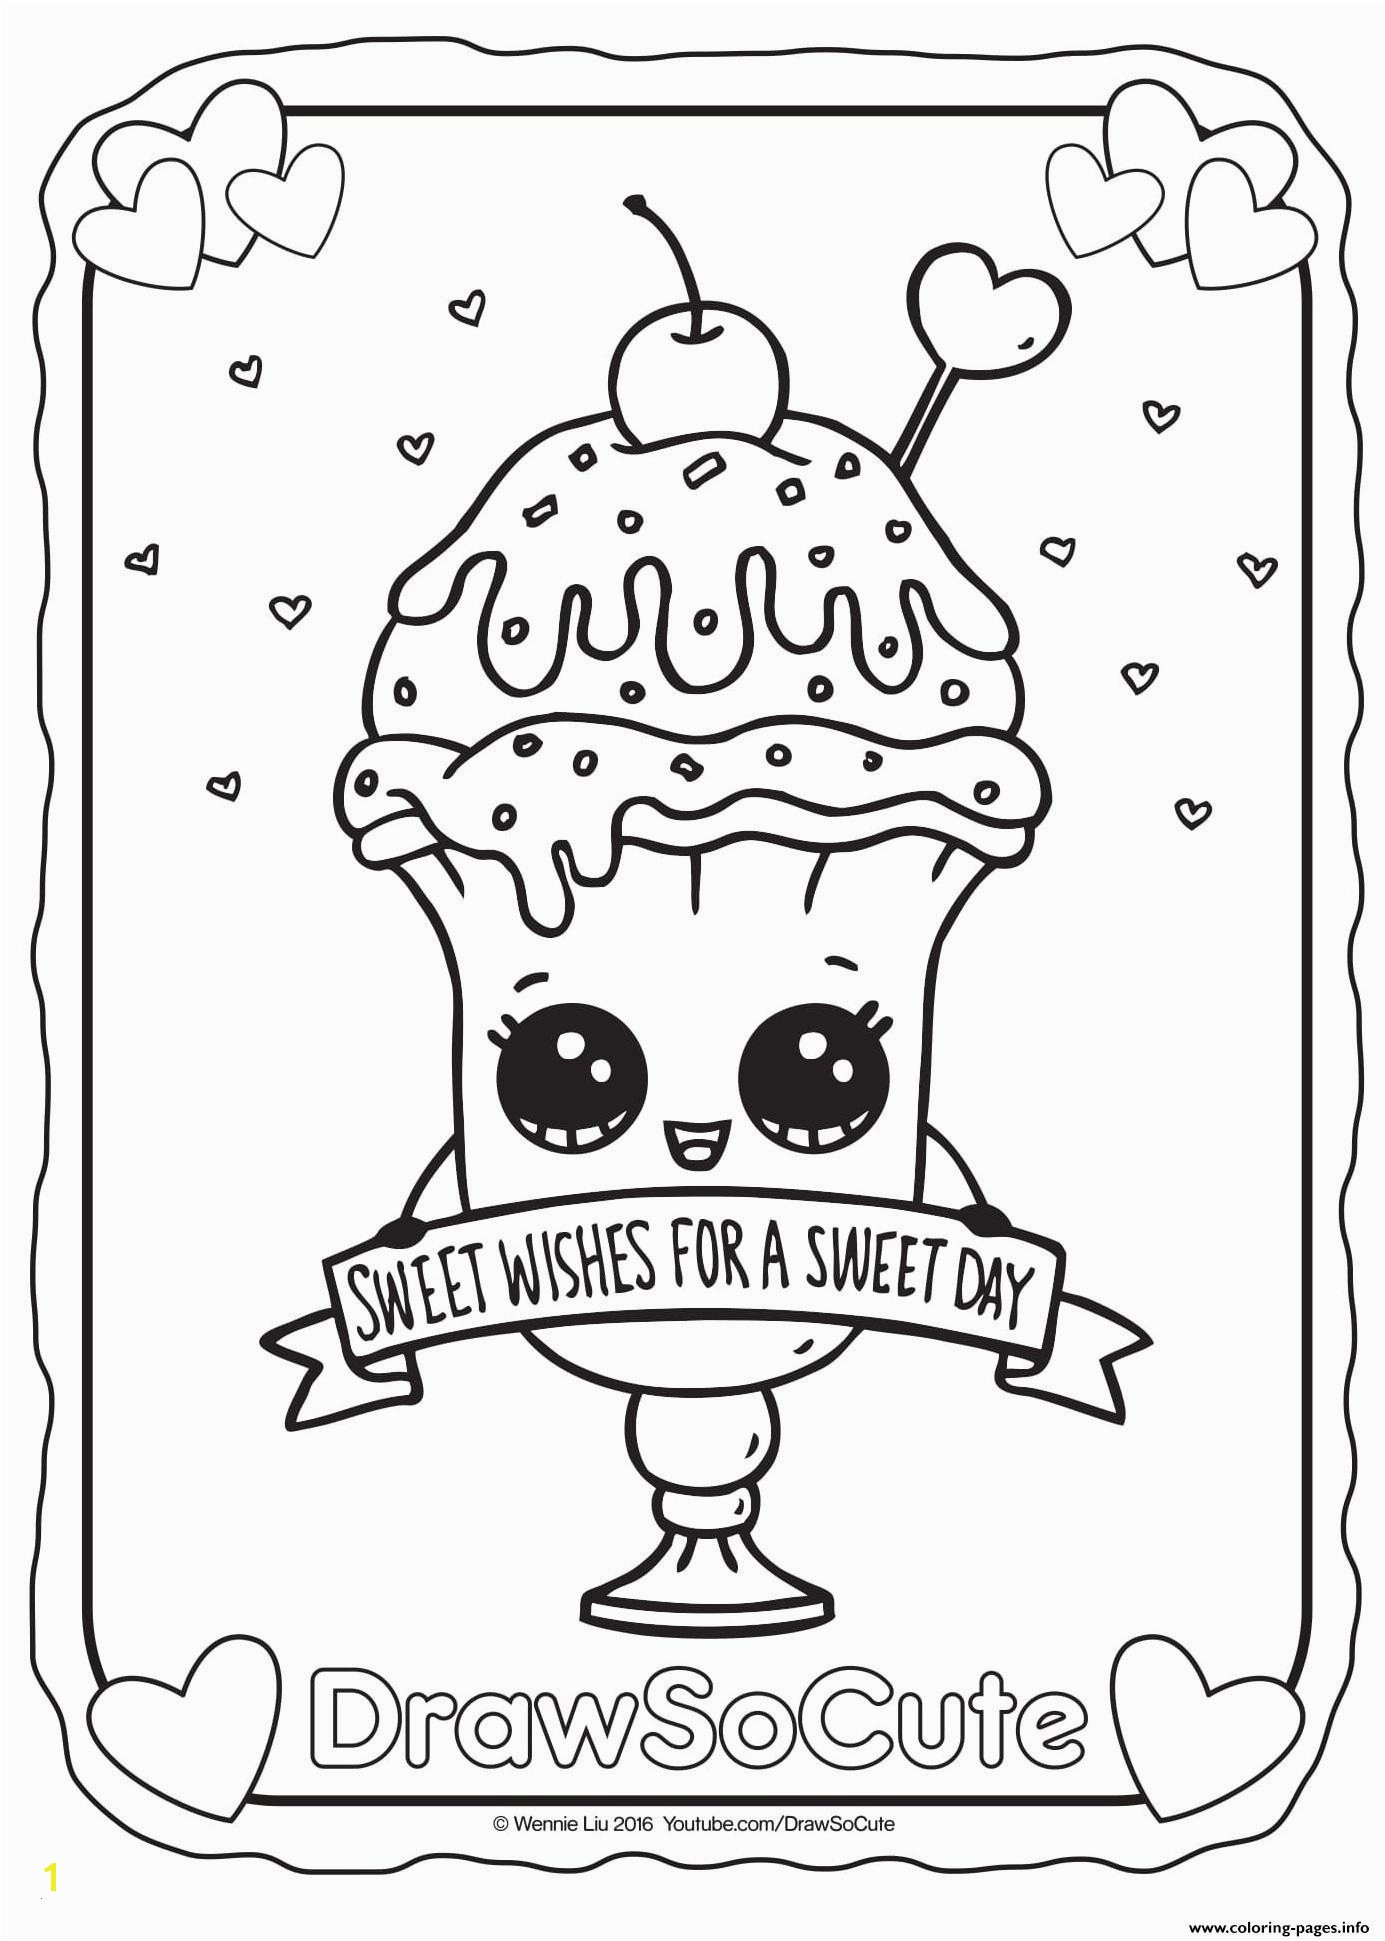 Cute Coloring Pages to Print Stylish Awesome Coloring Pages Cute Animals Unique Printable Od Dog Coloring